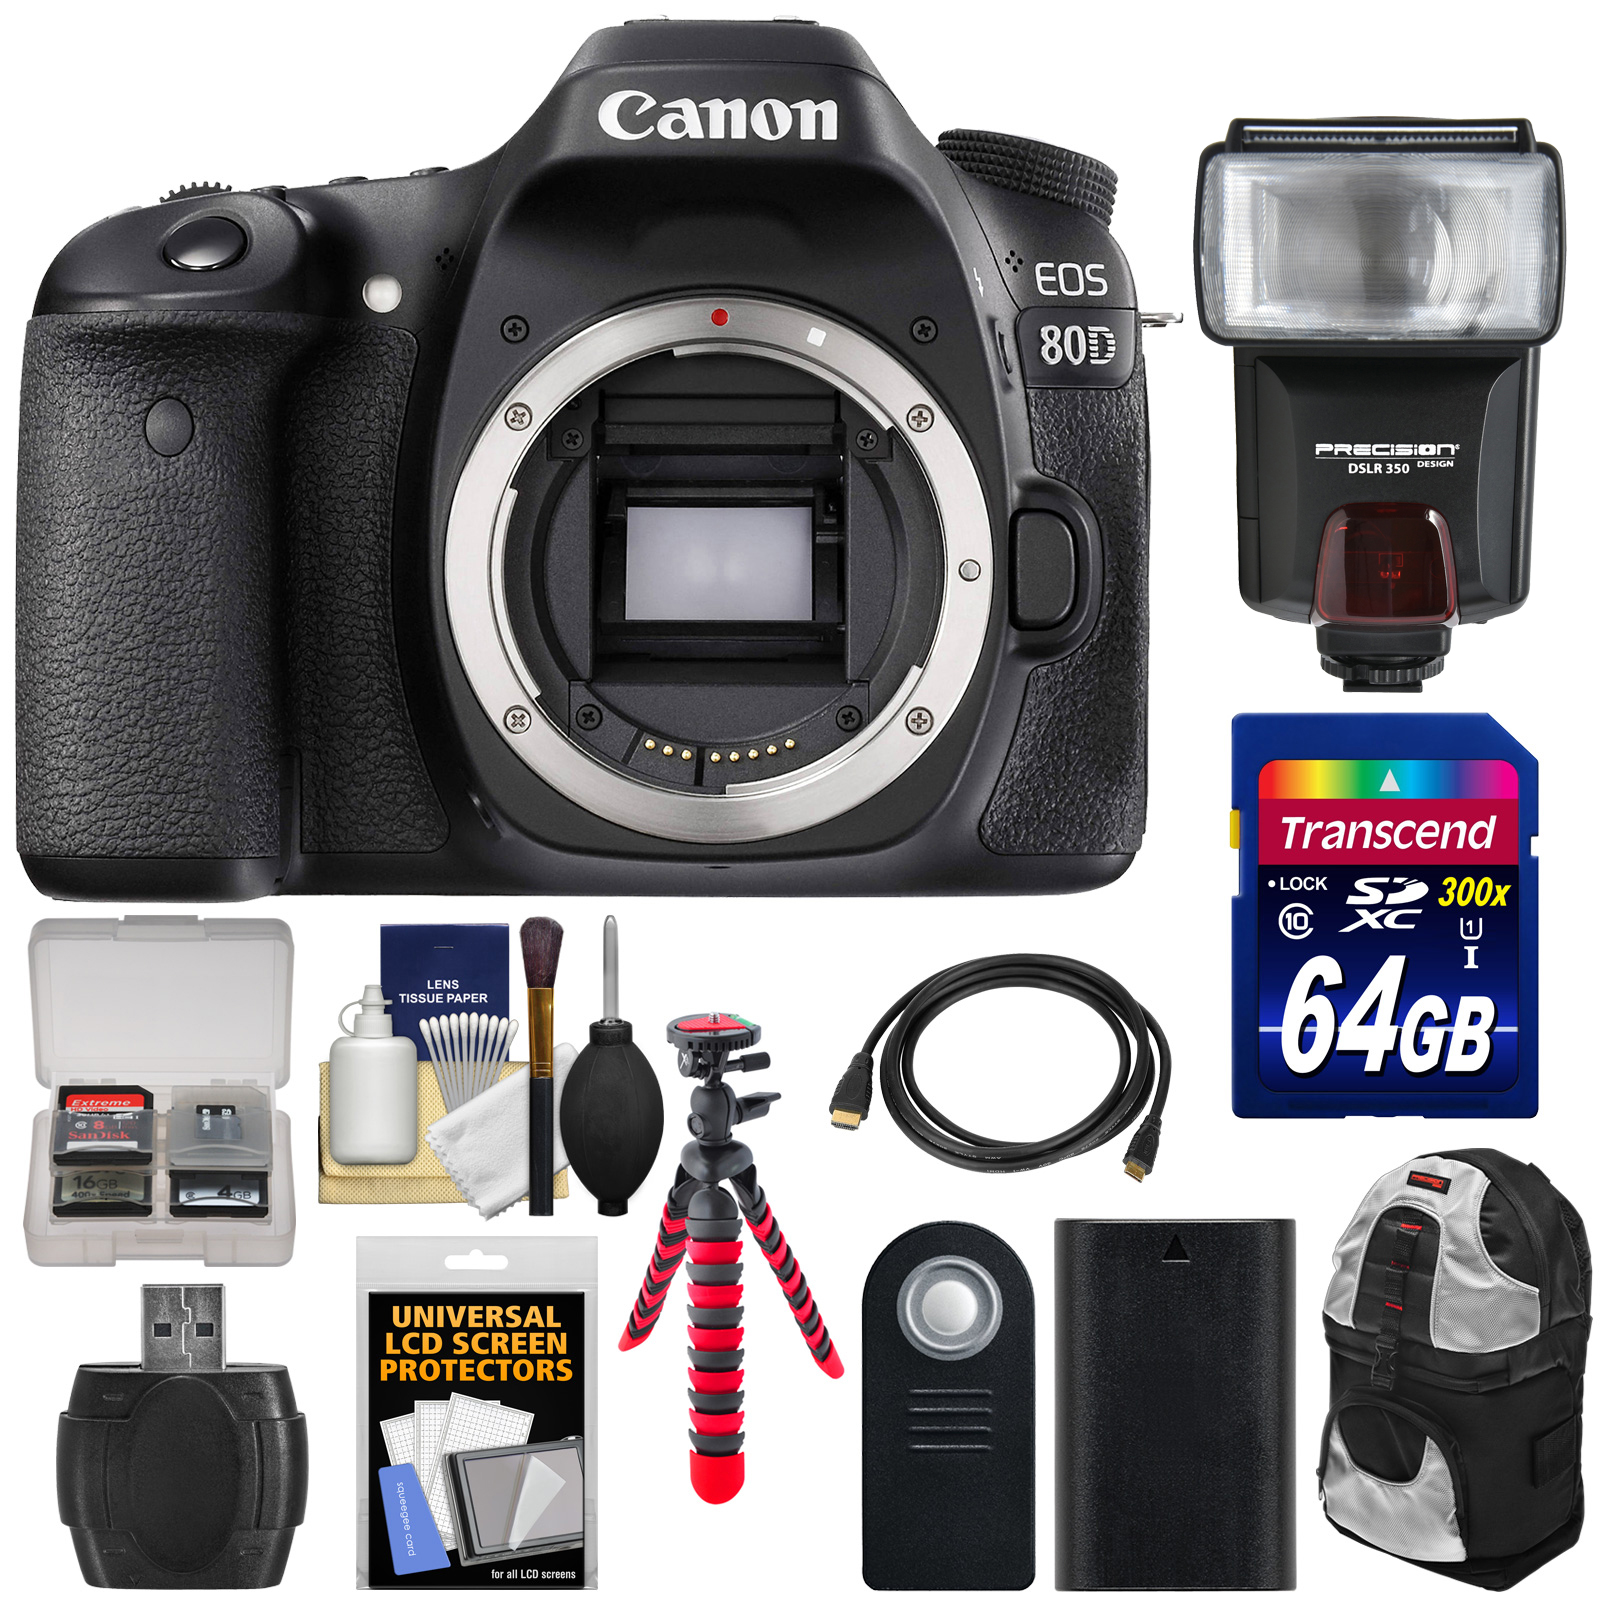 Canon EOS 80D Wi-Fi Digital SLR Camera Body with 64GB Card + Battery + Backpack + Flash + Flex Tripod + Kit by Canon